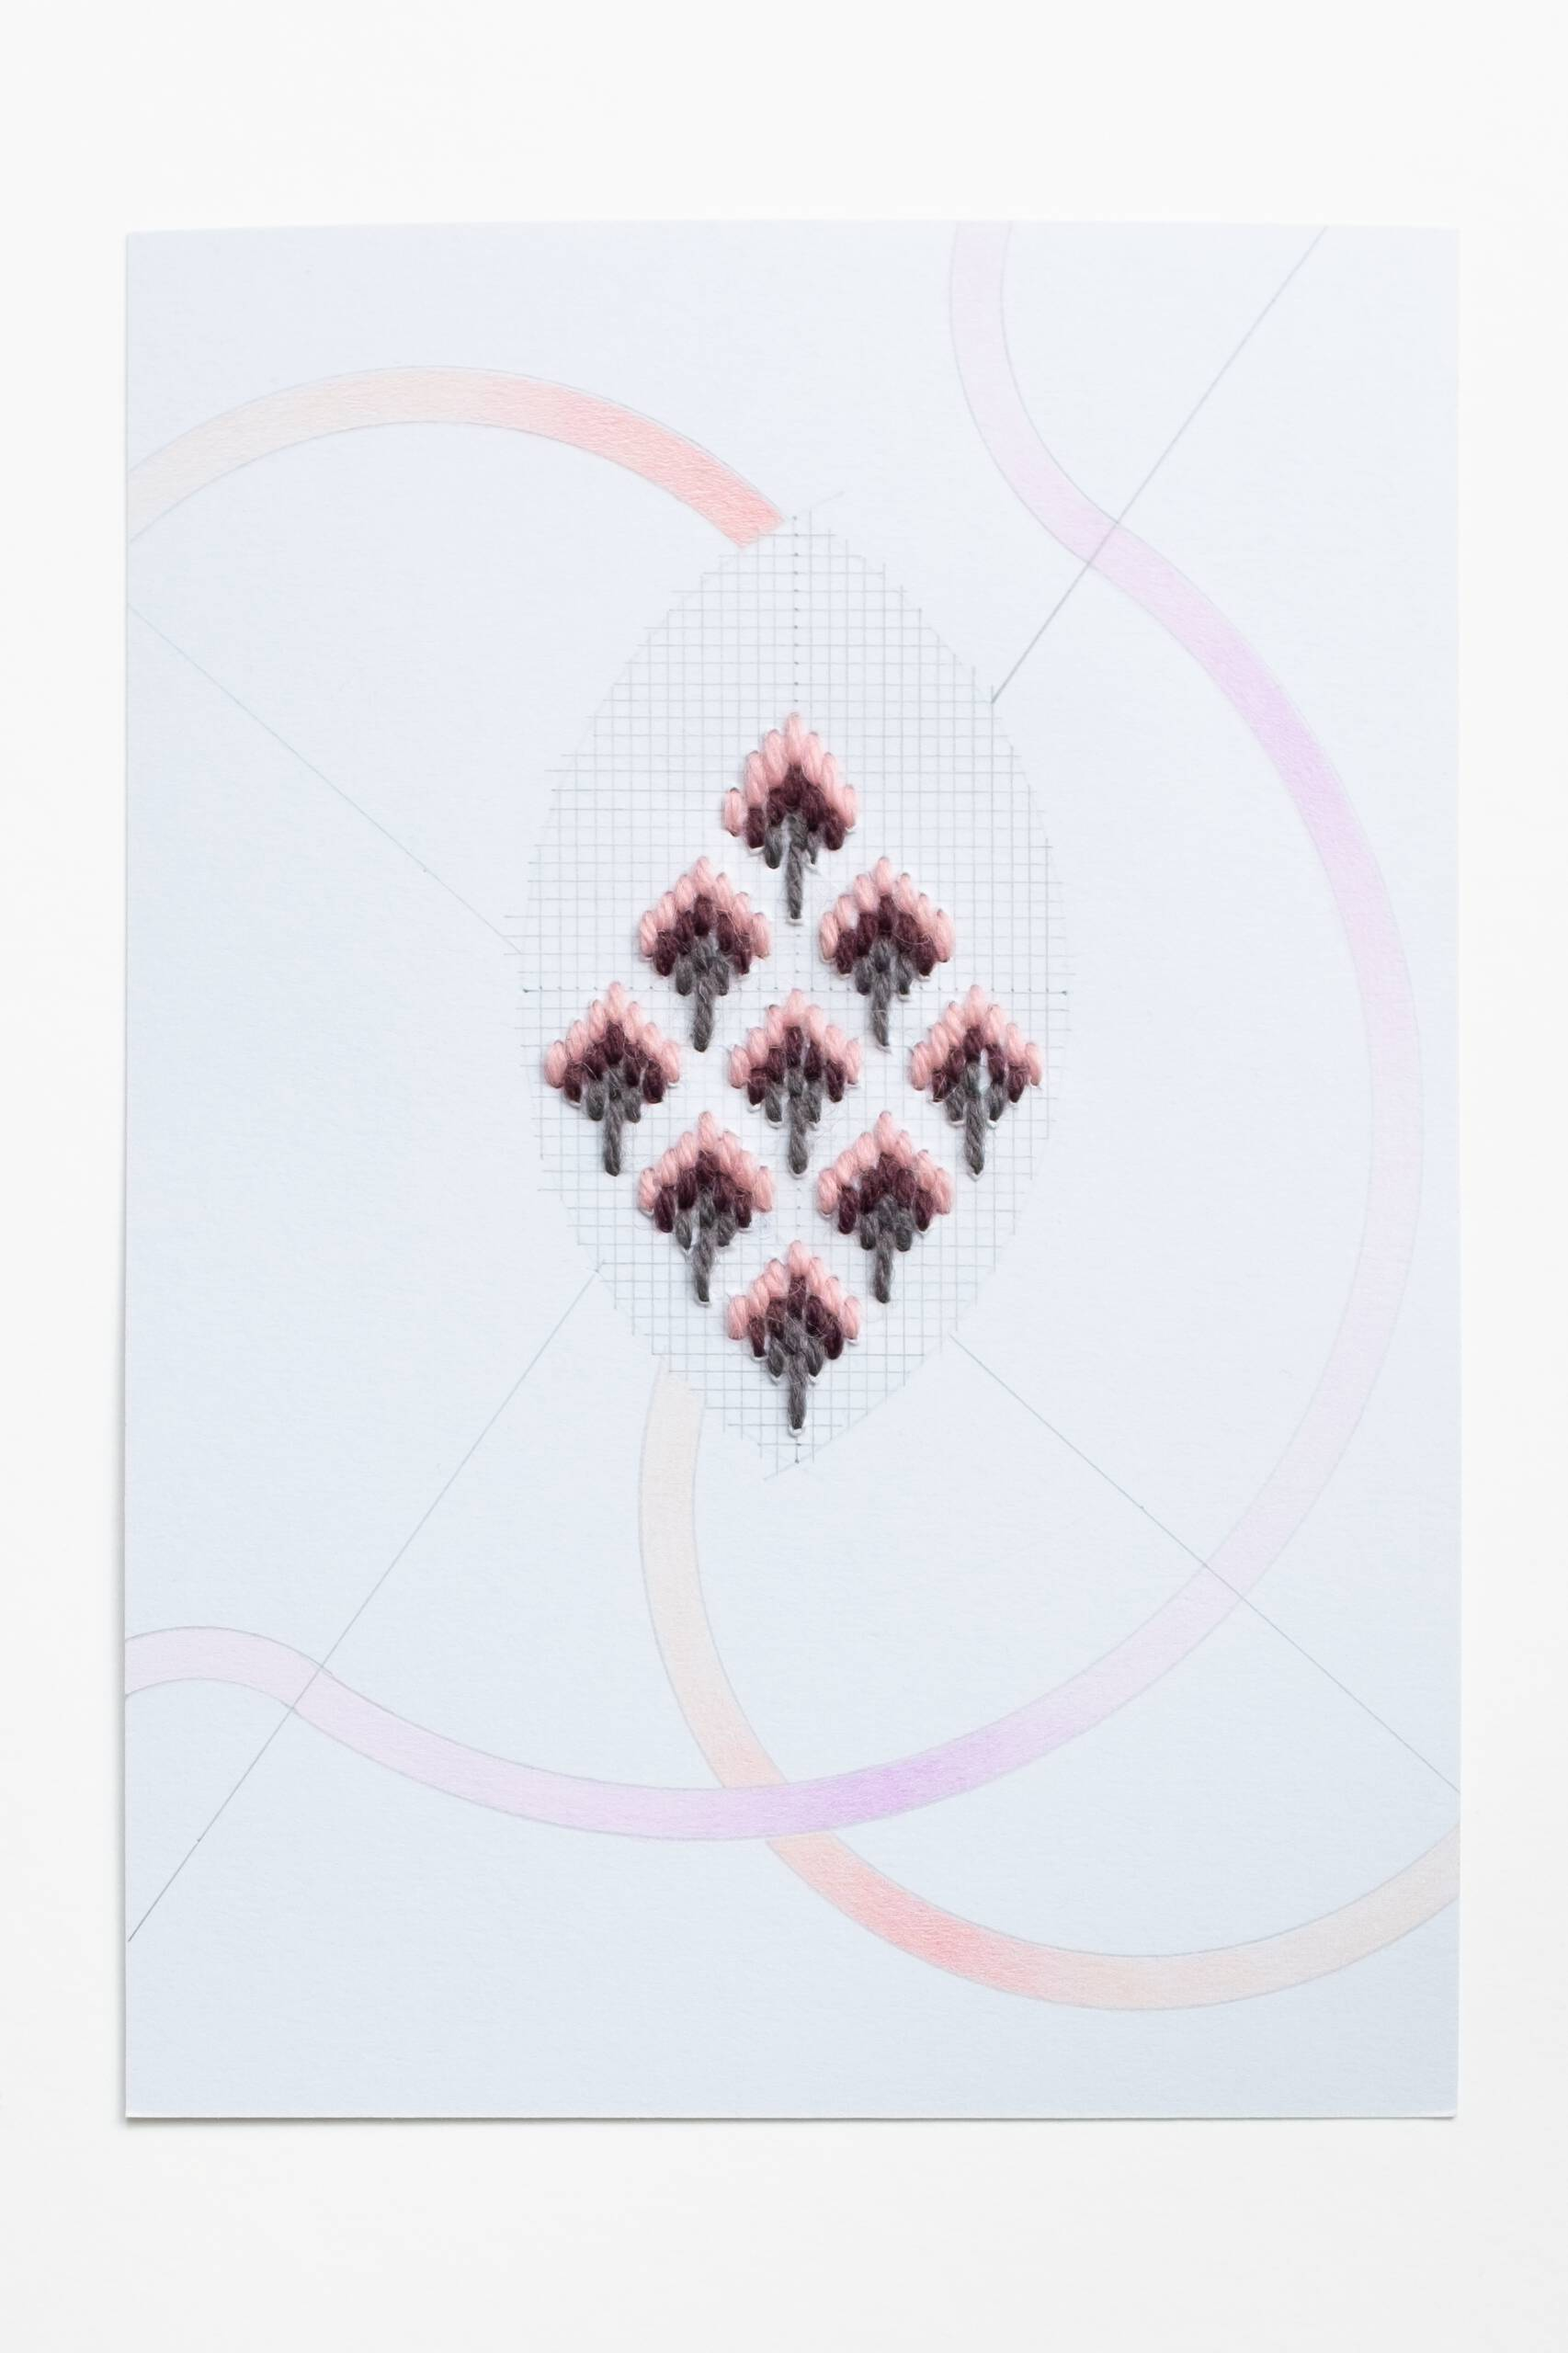 Bargello vesica piscis [pink-maroon-grey on blue], Hand-embroidered wool thread, pencil and colored pencil on paper, 2020